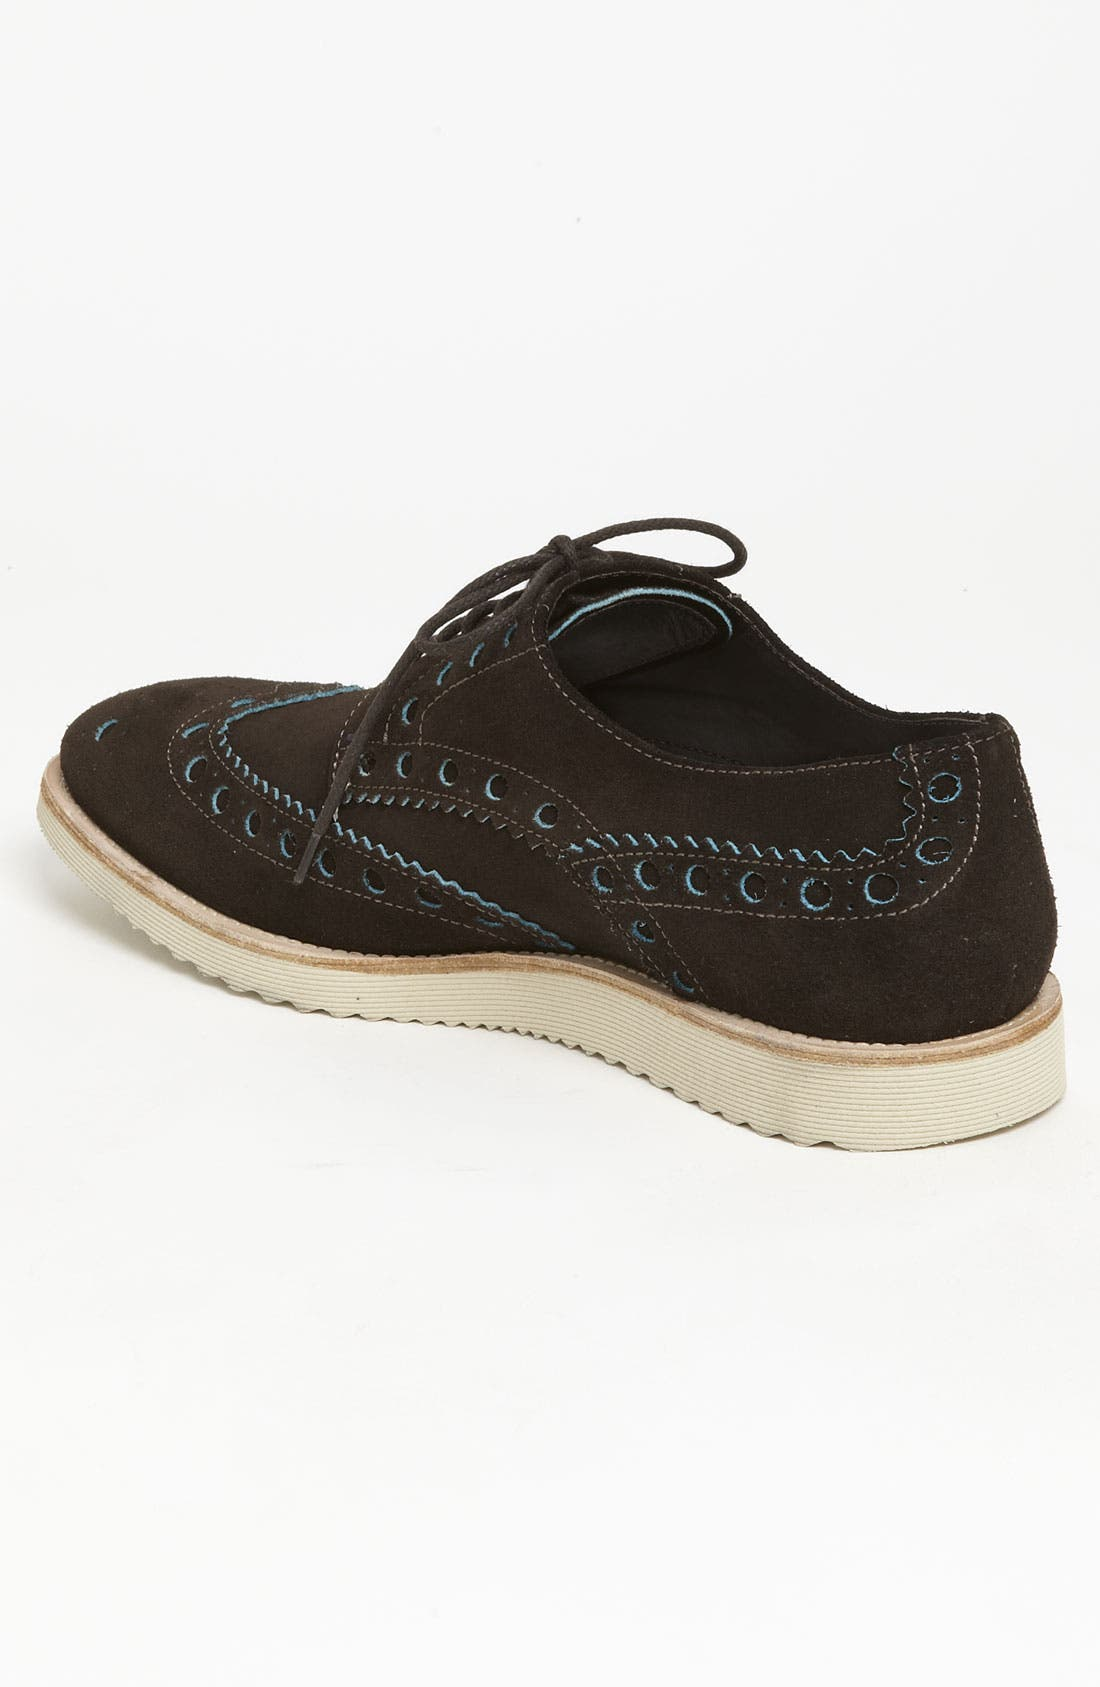 Alternate Image 2  - Paul Smith 'Hump' Wingtip